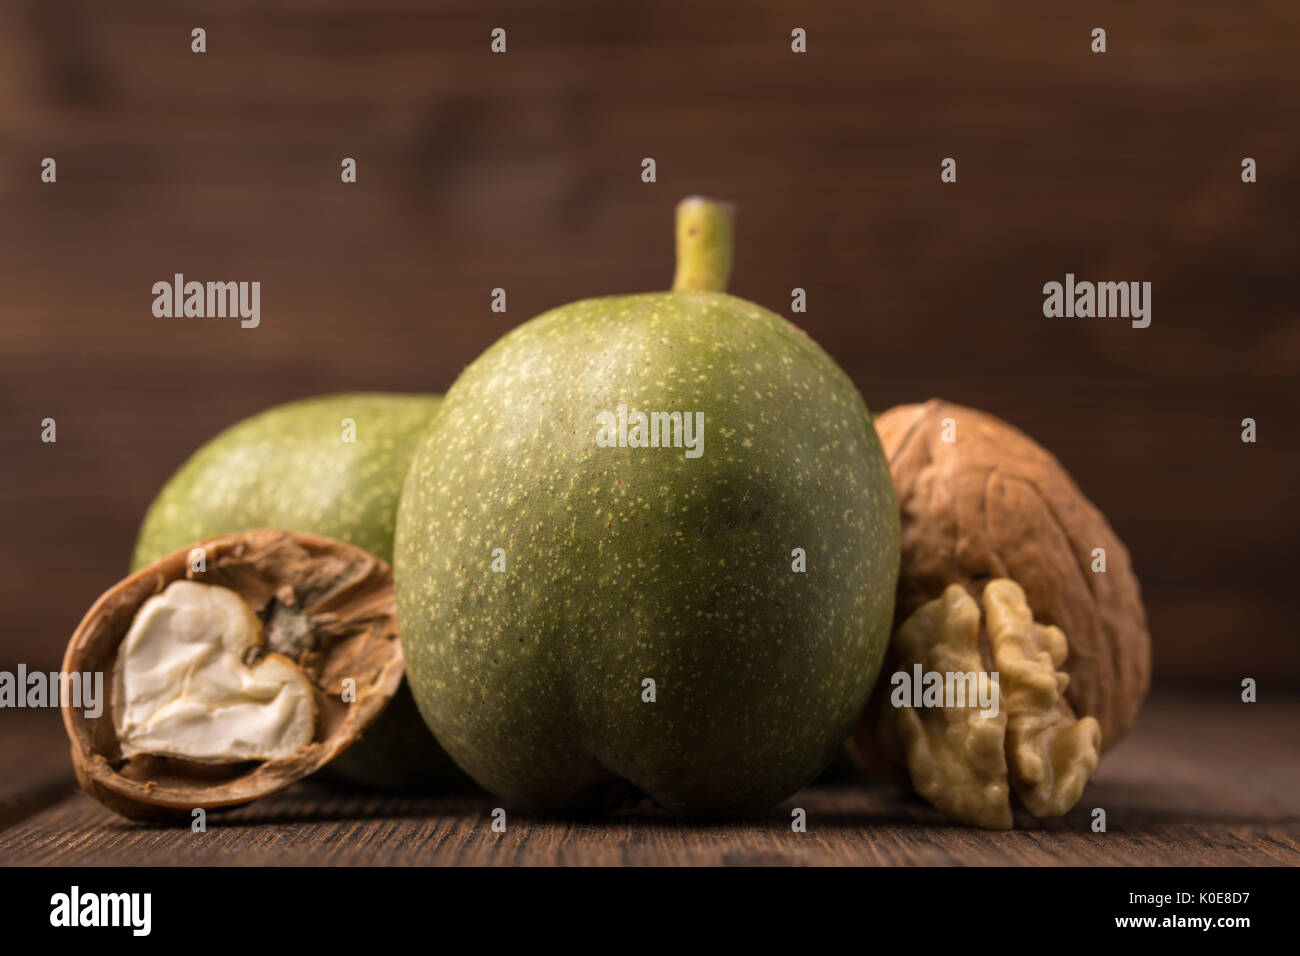 Fresh harvest of walnuts on a wooden background. Green and brown nuts. Shell and peel of walnuts. Walnuts on a wooden surface - Stock Image